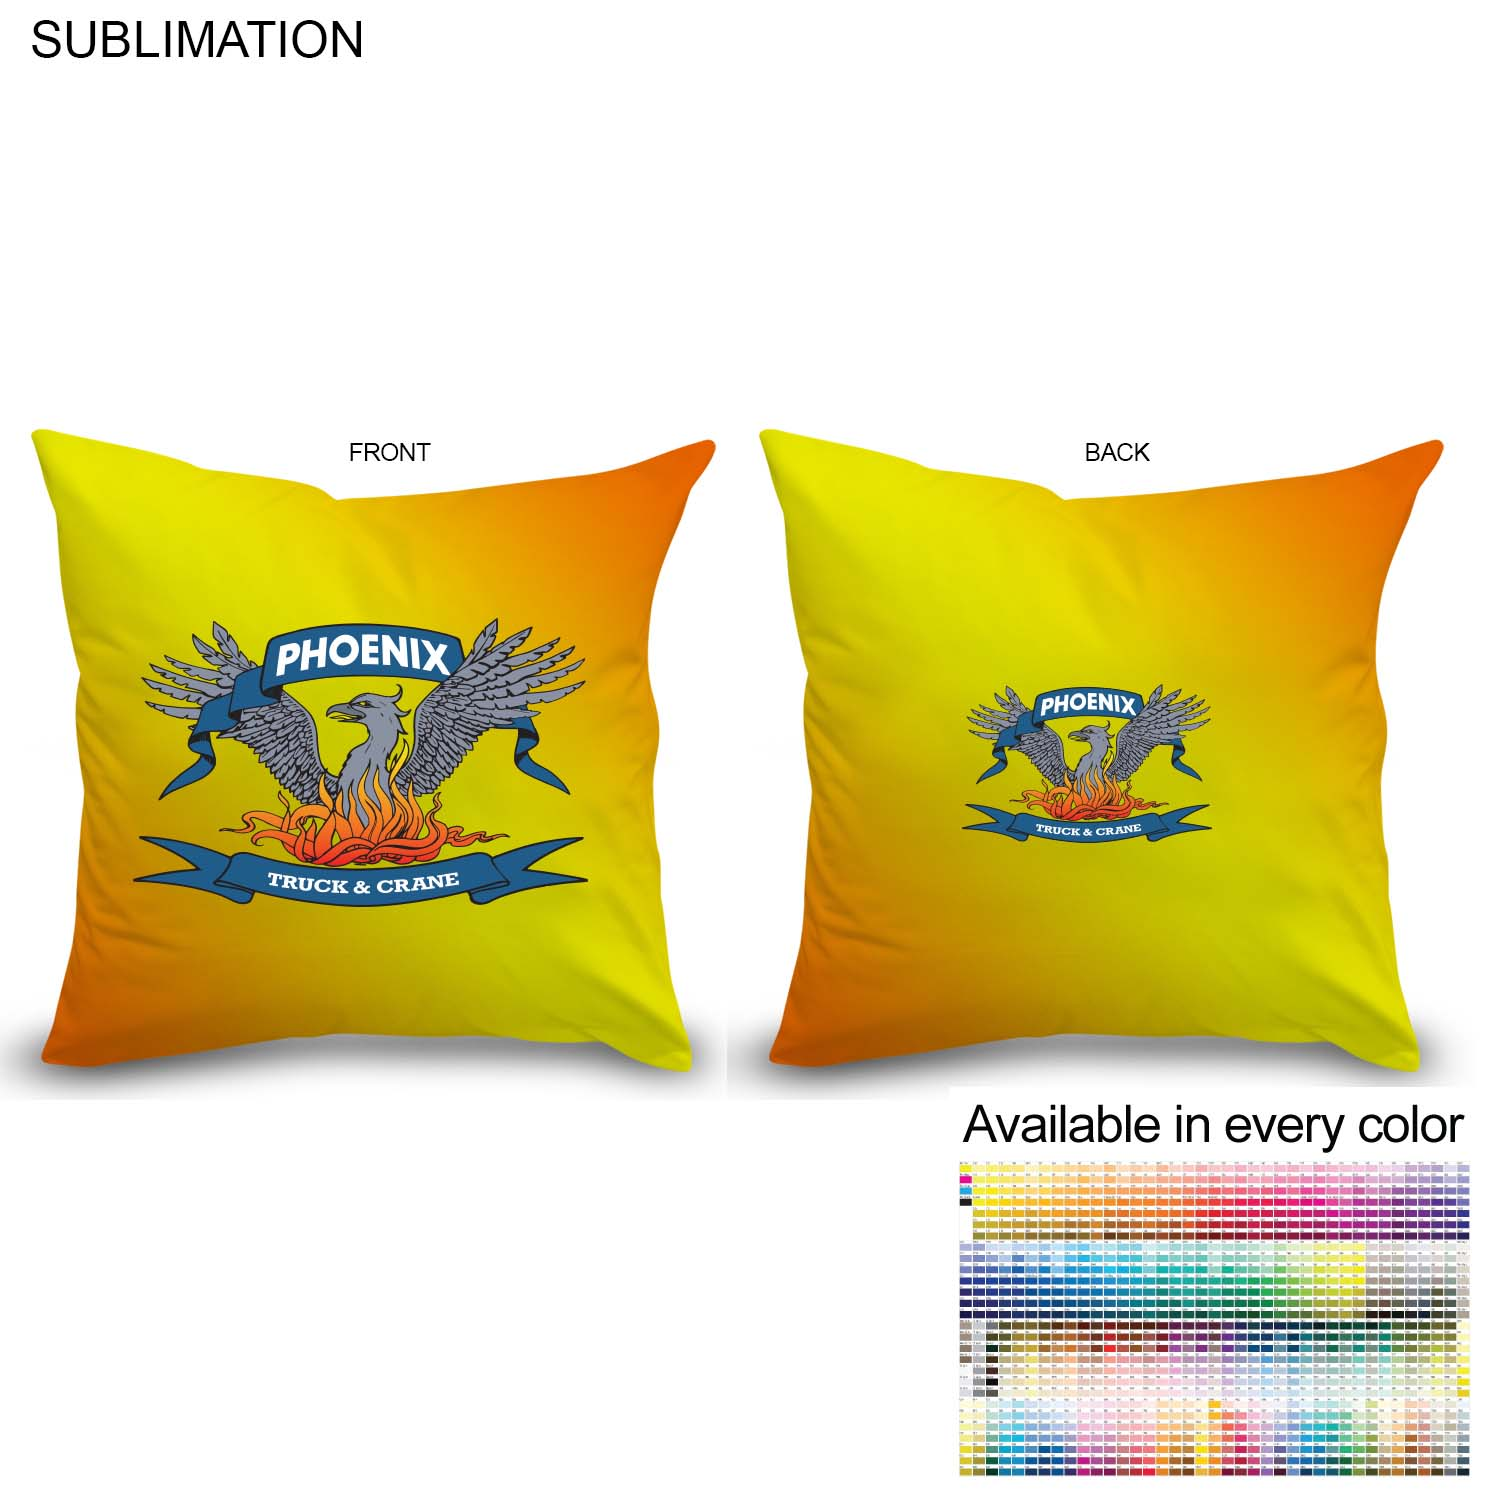 Sublimated Polyester Large Throw Cushion, 16x16 - Full Colour Imprint (#SU159)